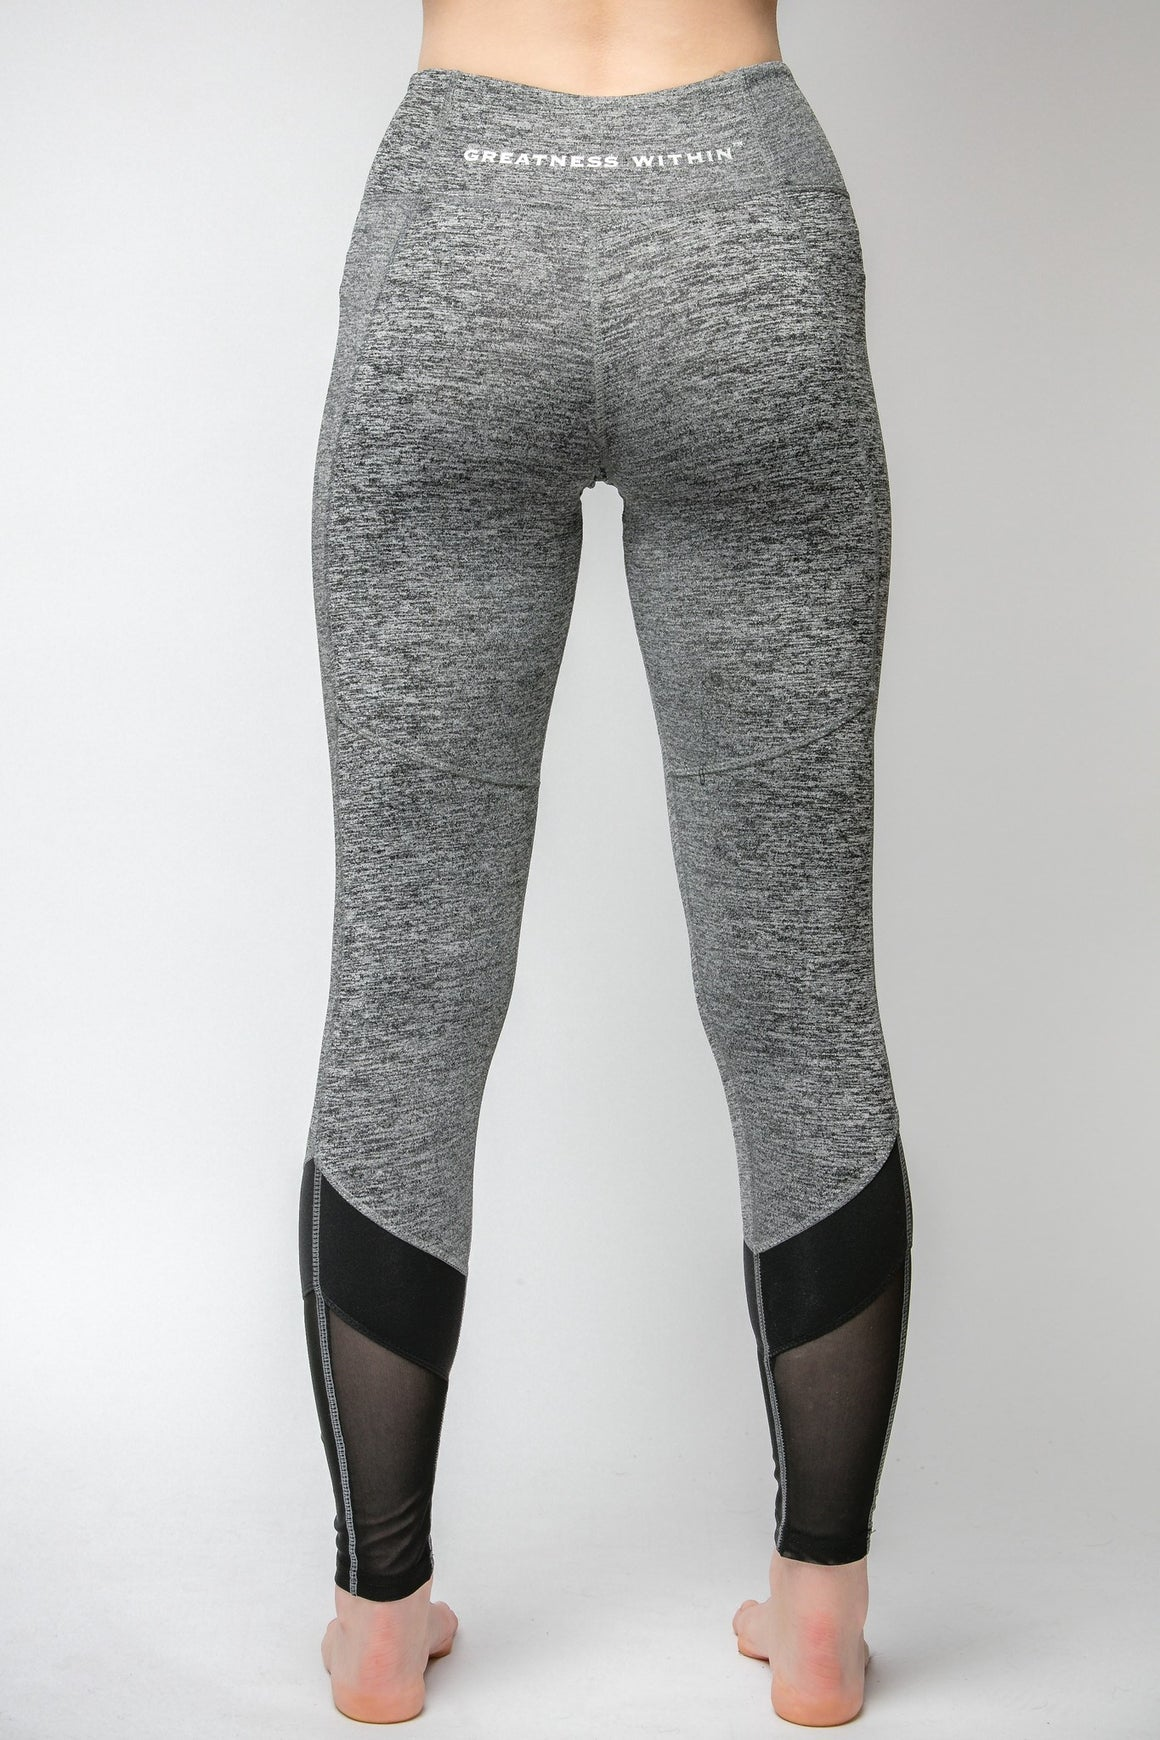 GW Grey 1/4 Mesh Leggings - Greatness Within